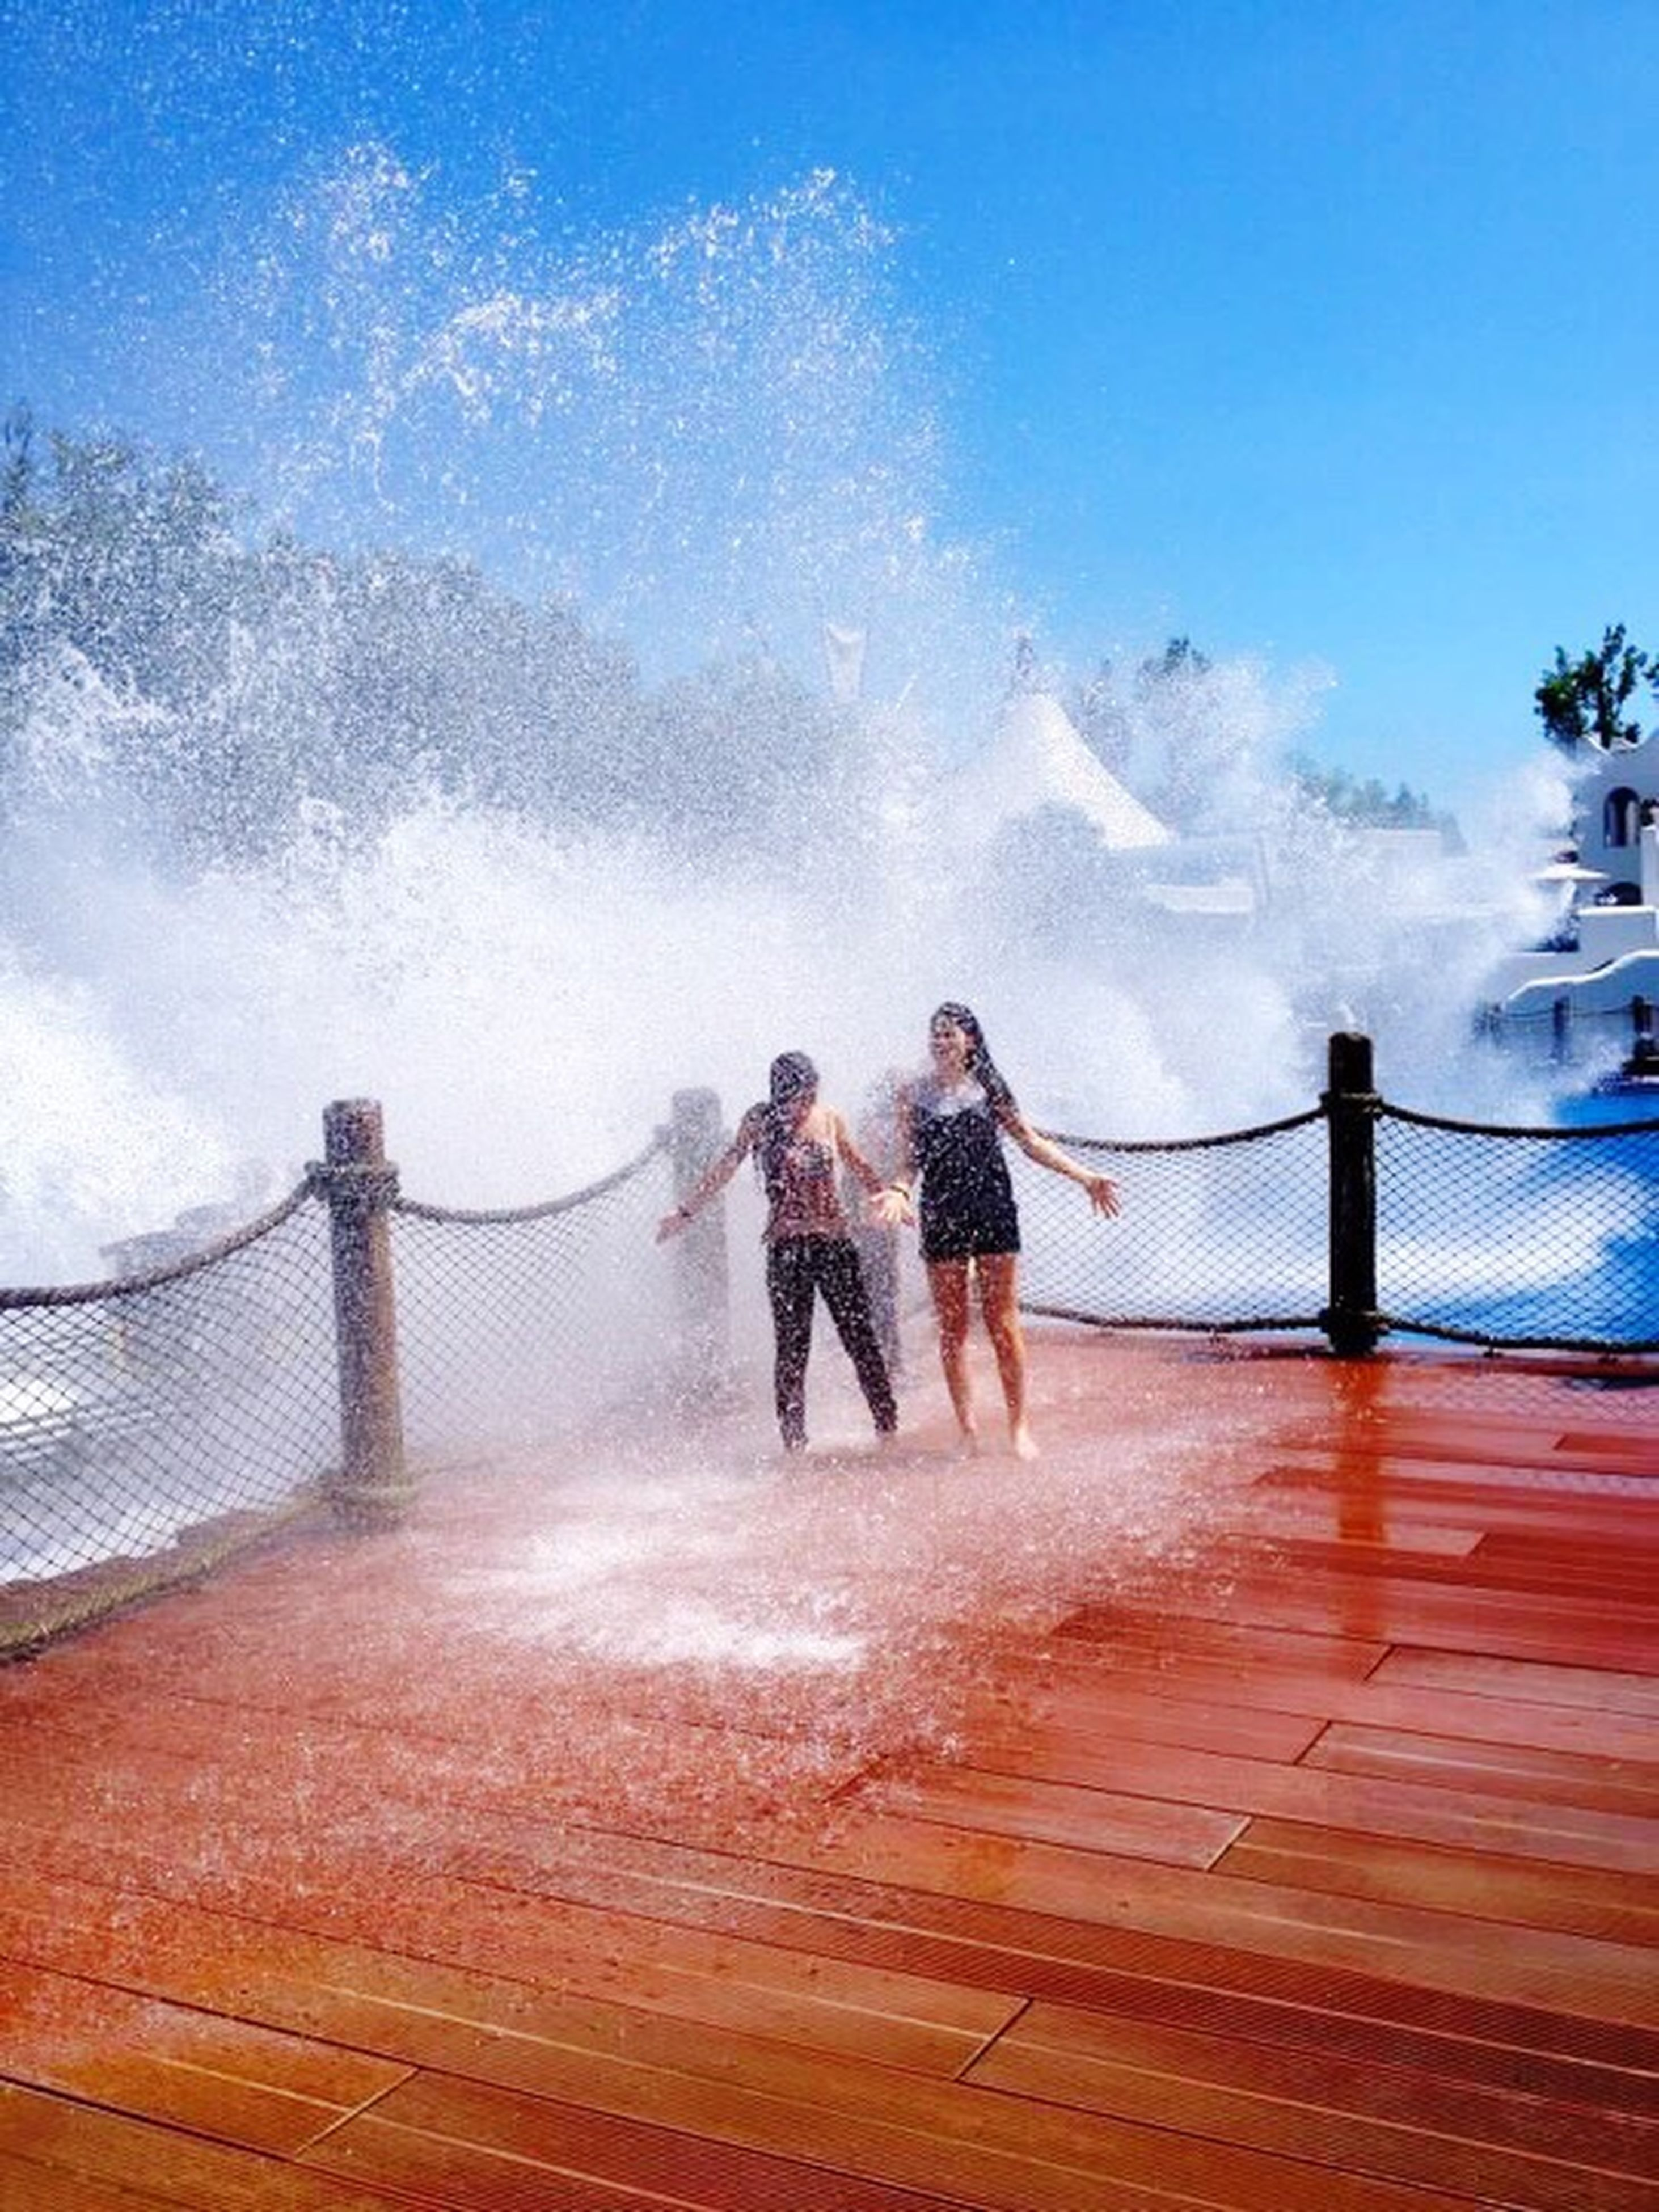 lifestyles, leisure activity, full length, men, water, railing, rear view, togetherness, sky, bonding, sea, walking, person, bridge - man made structure, standing, casual clothing, vacations, built structure